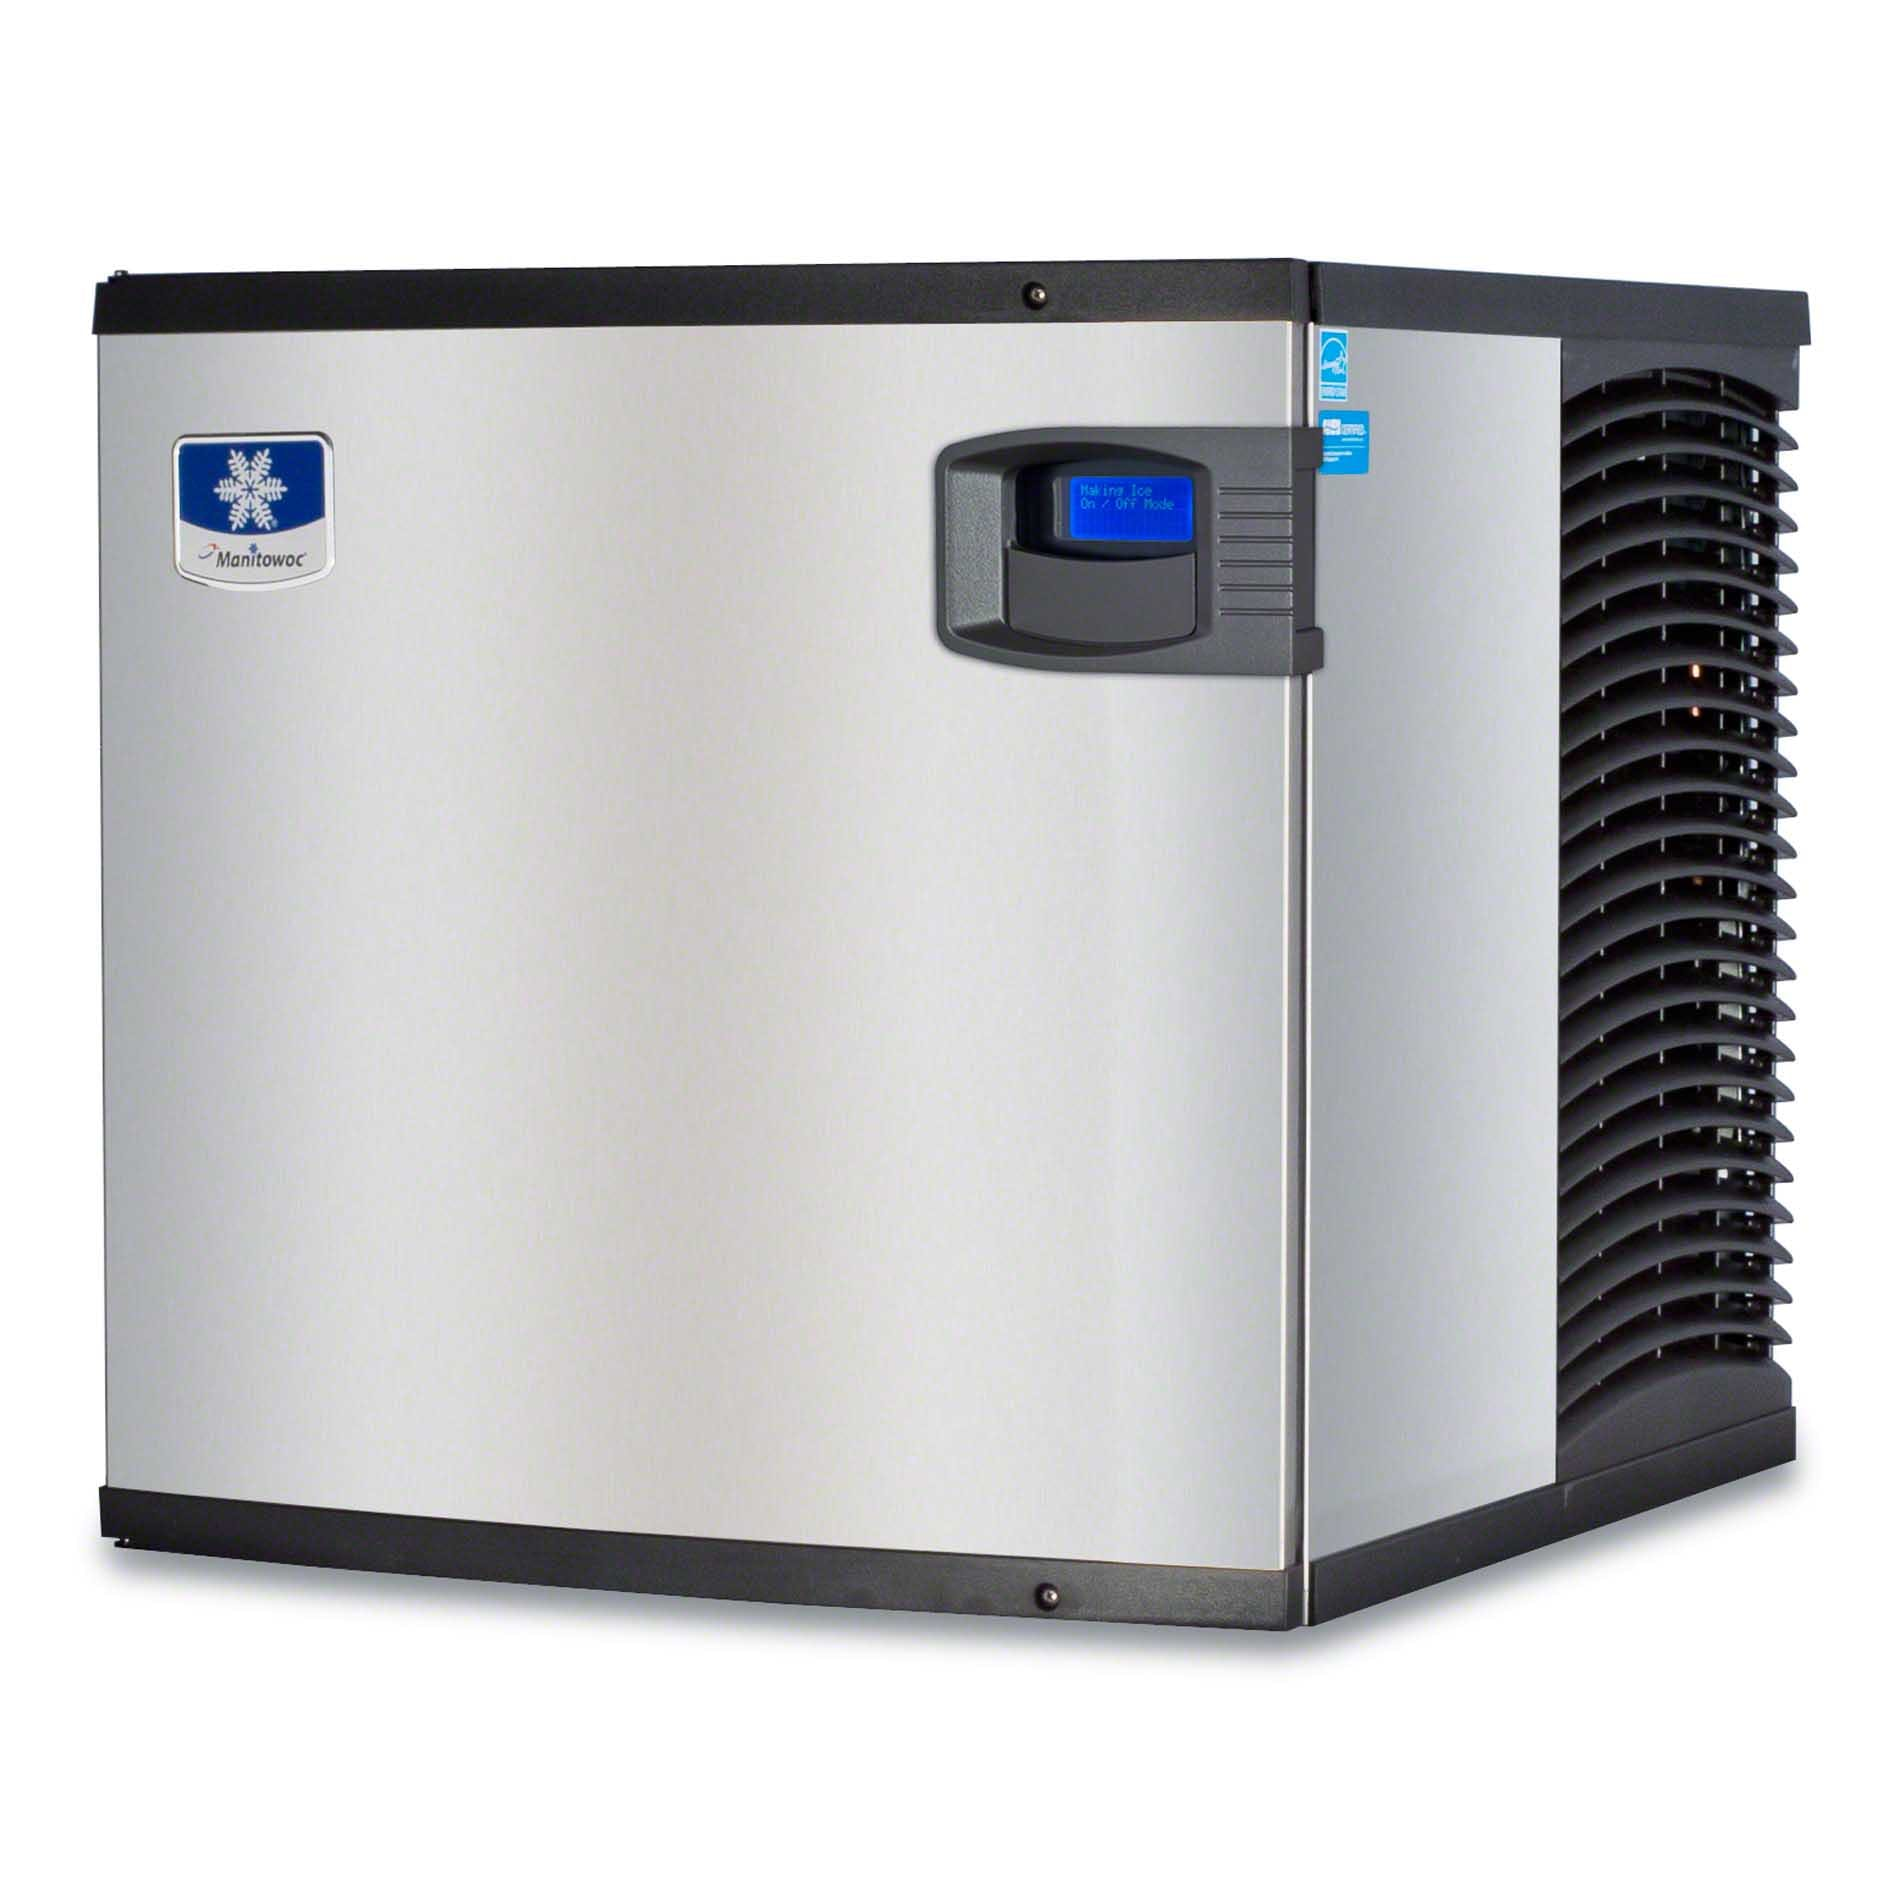 Manitowoc - ID-0322A 335 lb Full Size Cube Ice Machine - Indigo Series - sold by Food Service Warehouse